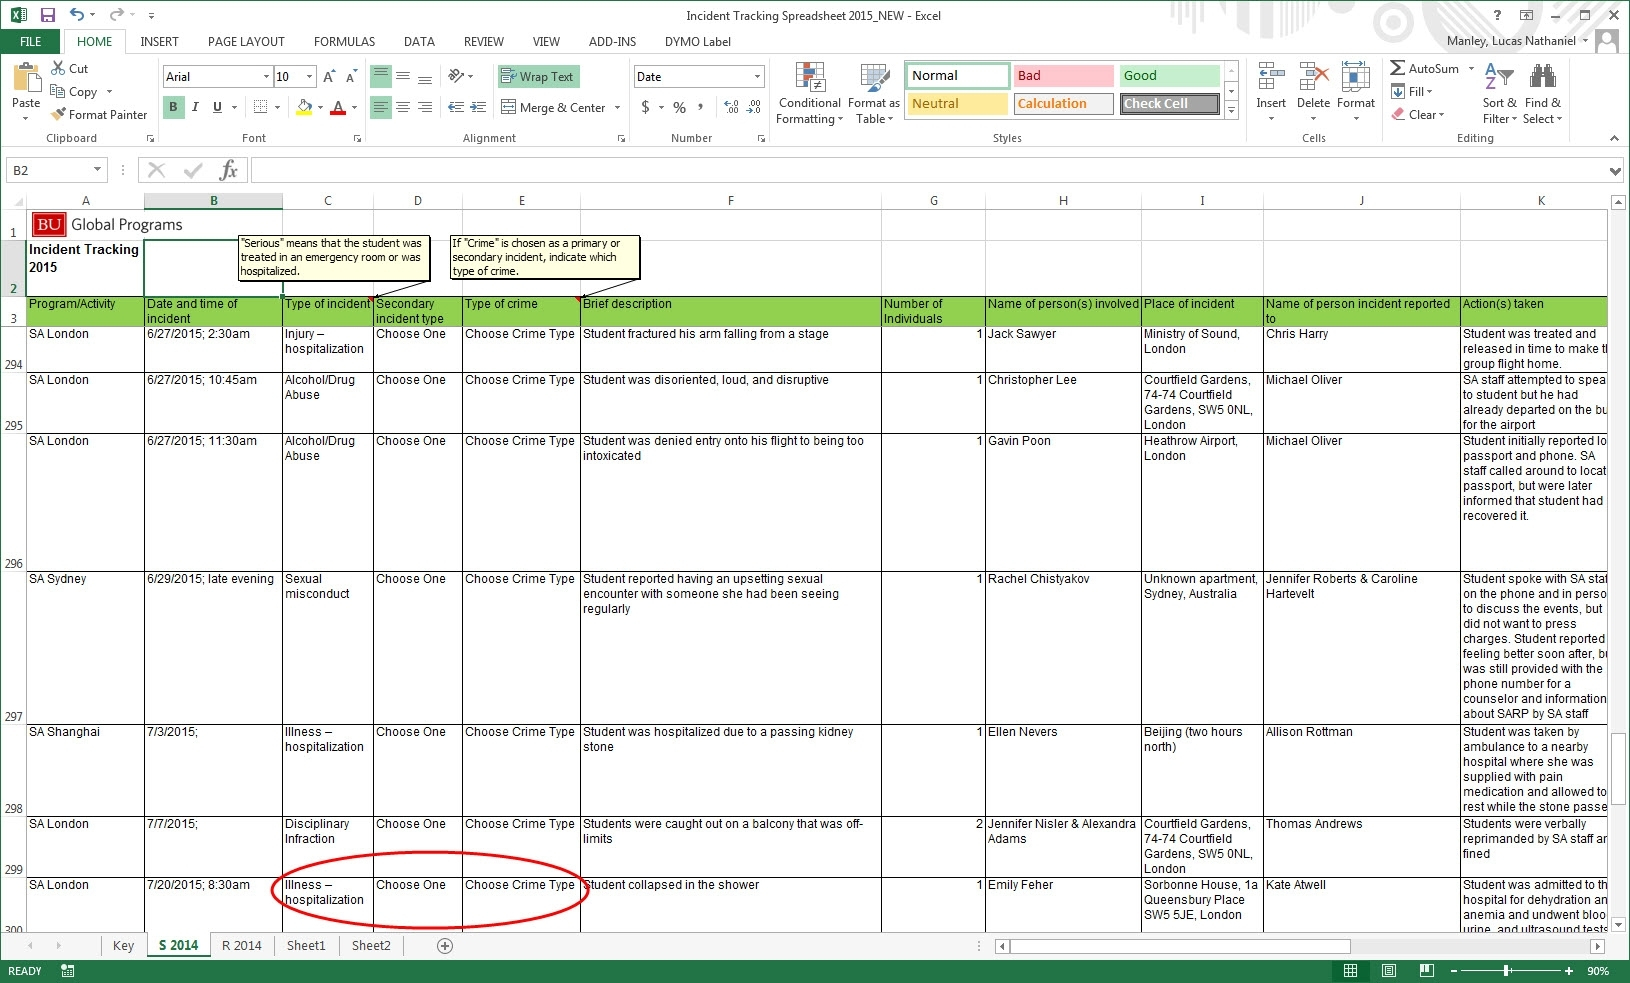 Incident Tracking Excel Spreadsheet | Natural Buff Dog Within And Incident Tracking Spreadsheet